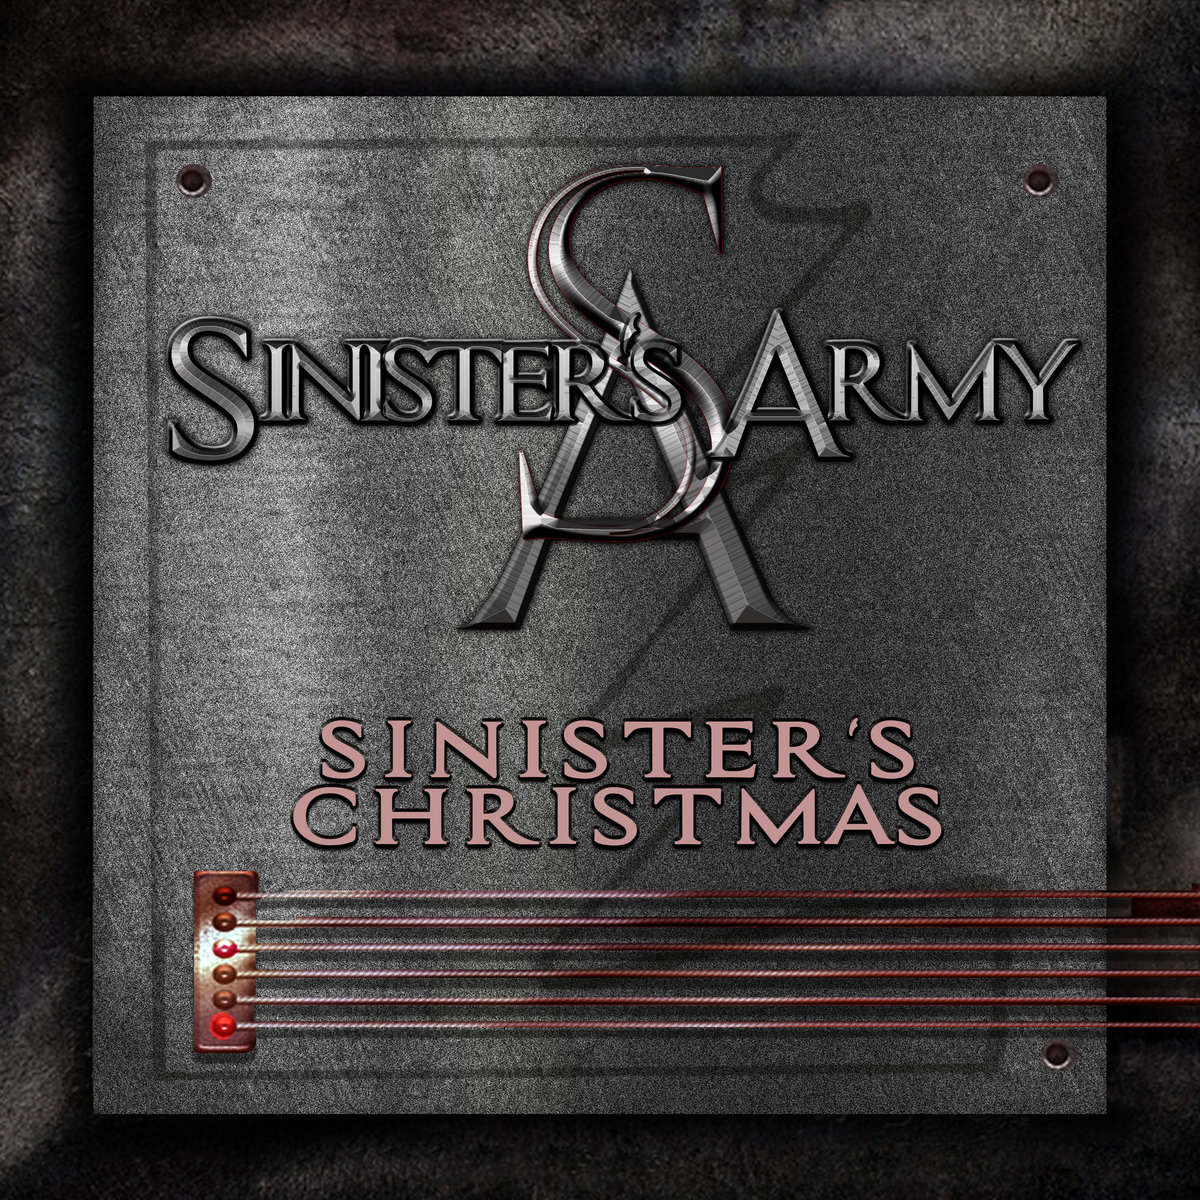 Sinister's Christmas by SINISTERS ARMY